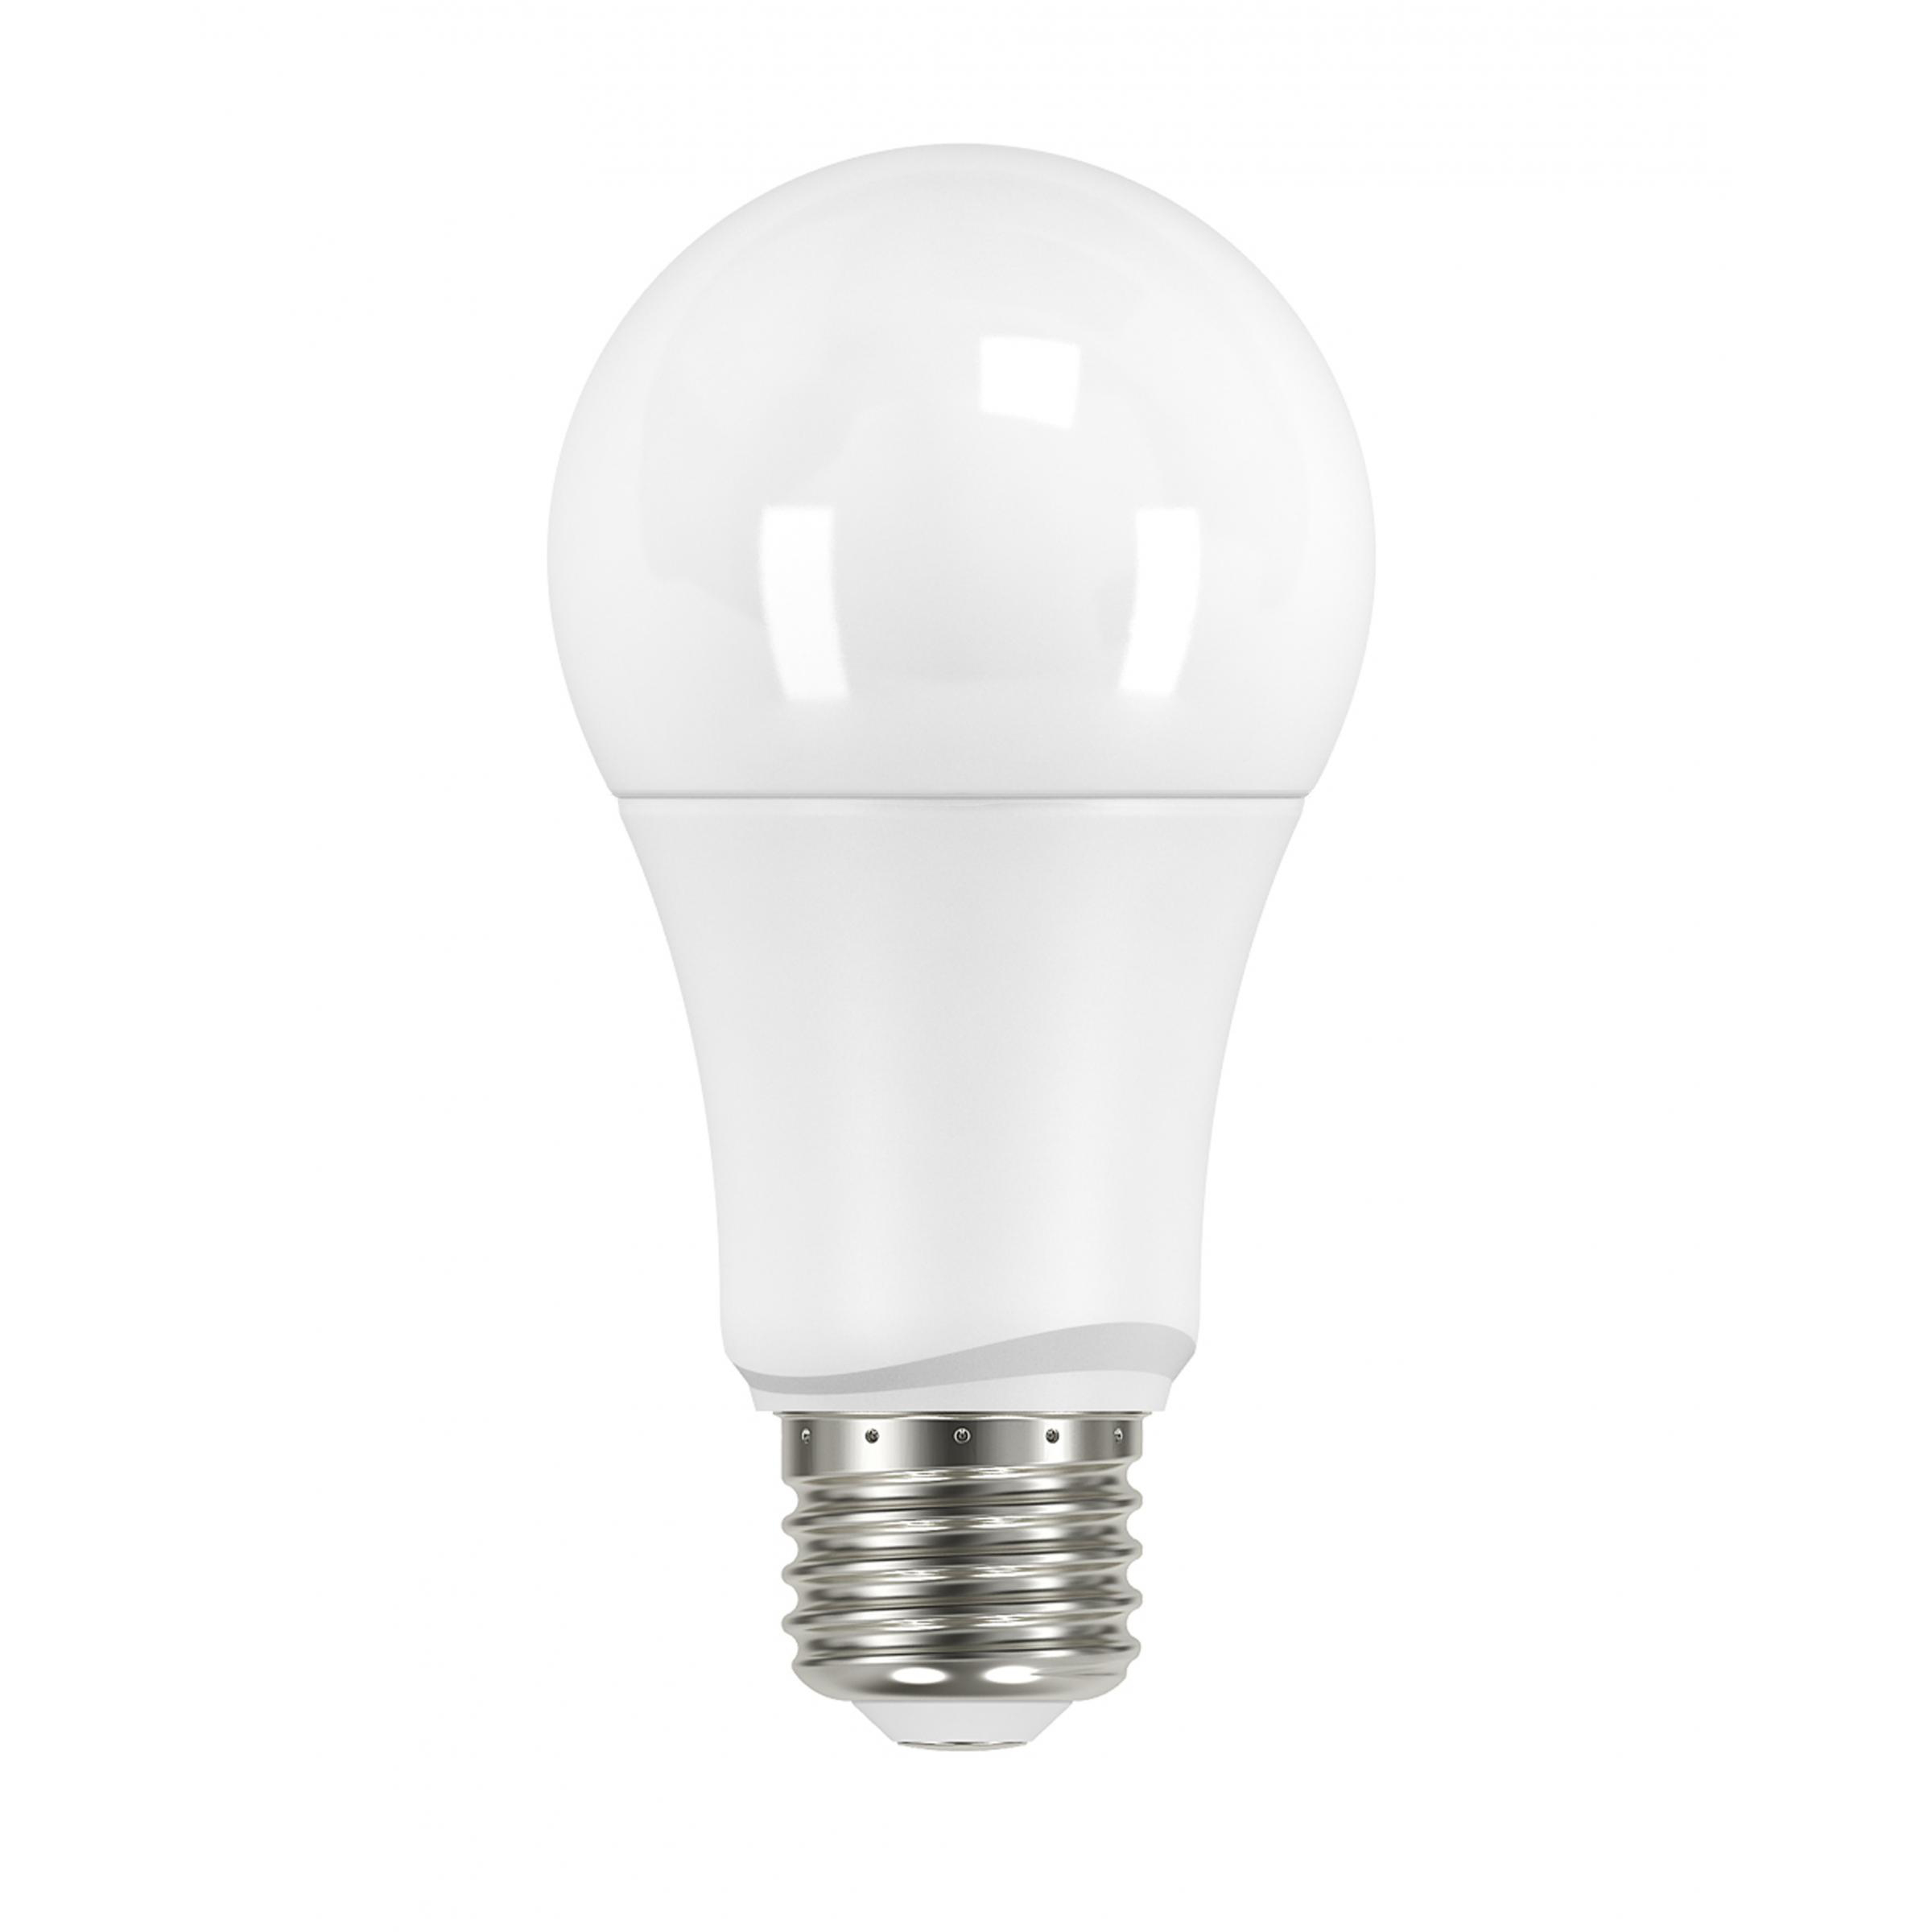 9.5W A19 LED Light Bulb - 60W Inc. Equal - 120V - E26 Medium Base - 800lm - 3000K